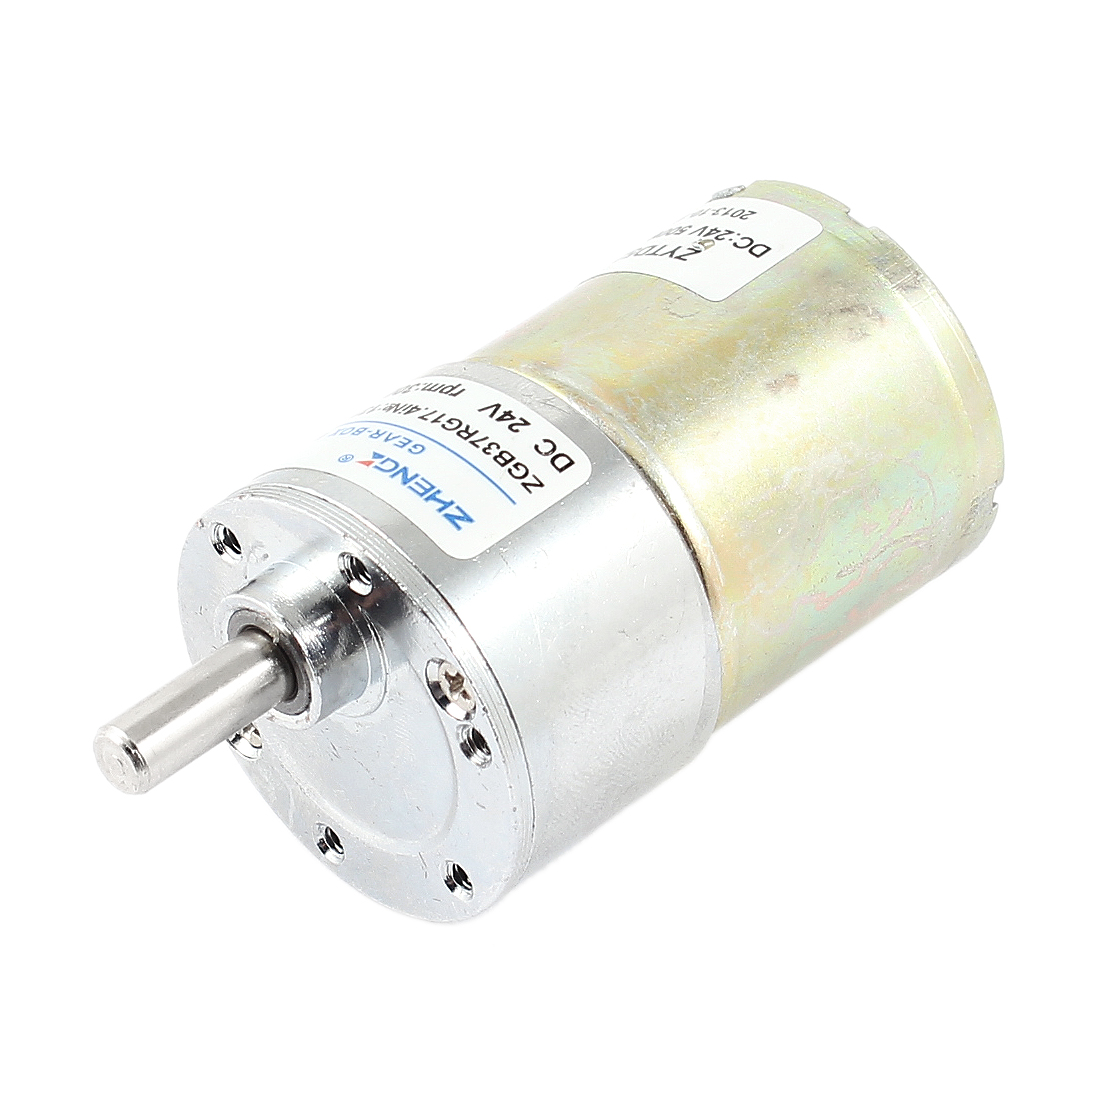 DC 24V 0.33A 37mm Dia Magnetic Gear Geared Box Motor 300 RPM